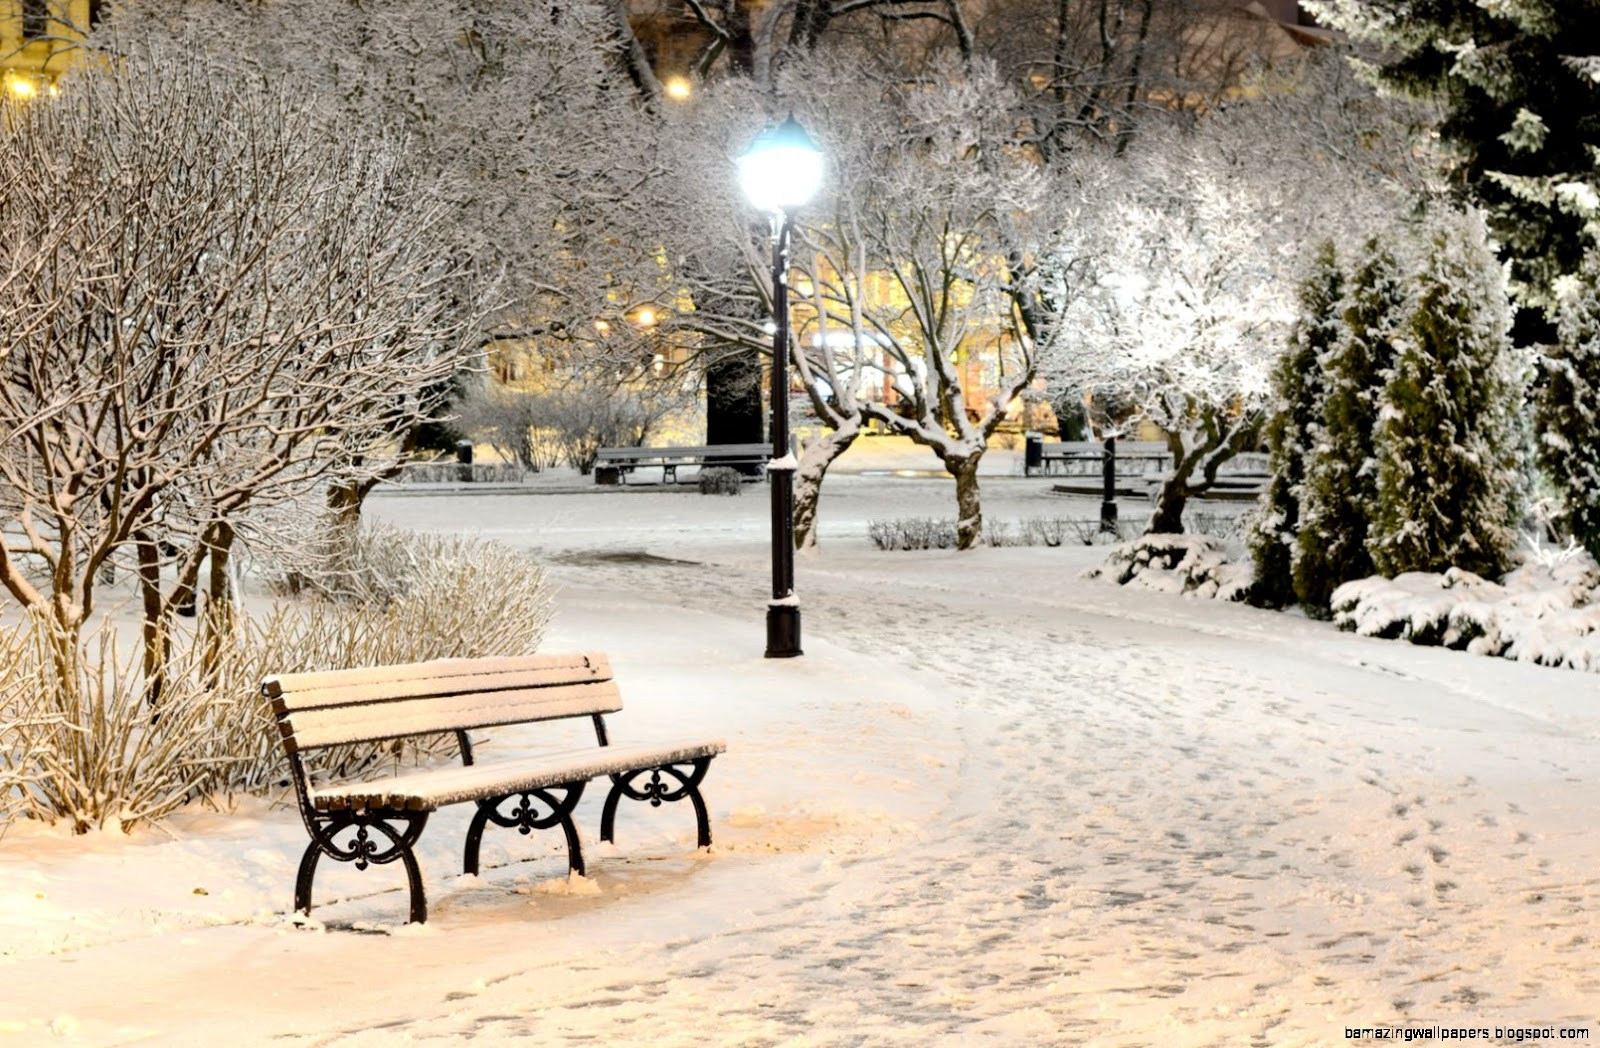 Winter Wonderland  Or Ground Zero for Flu  Virus Season  The